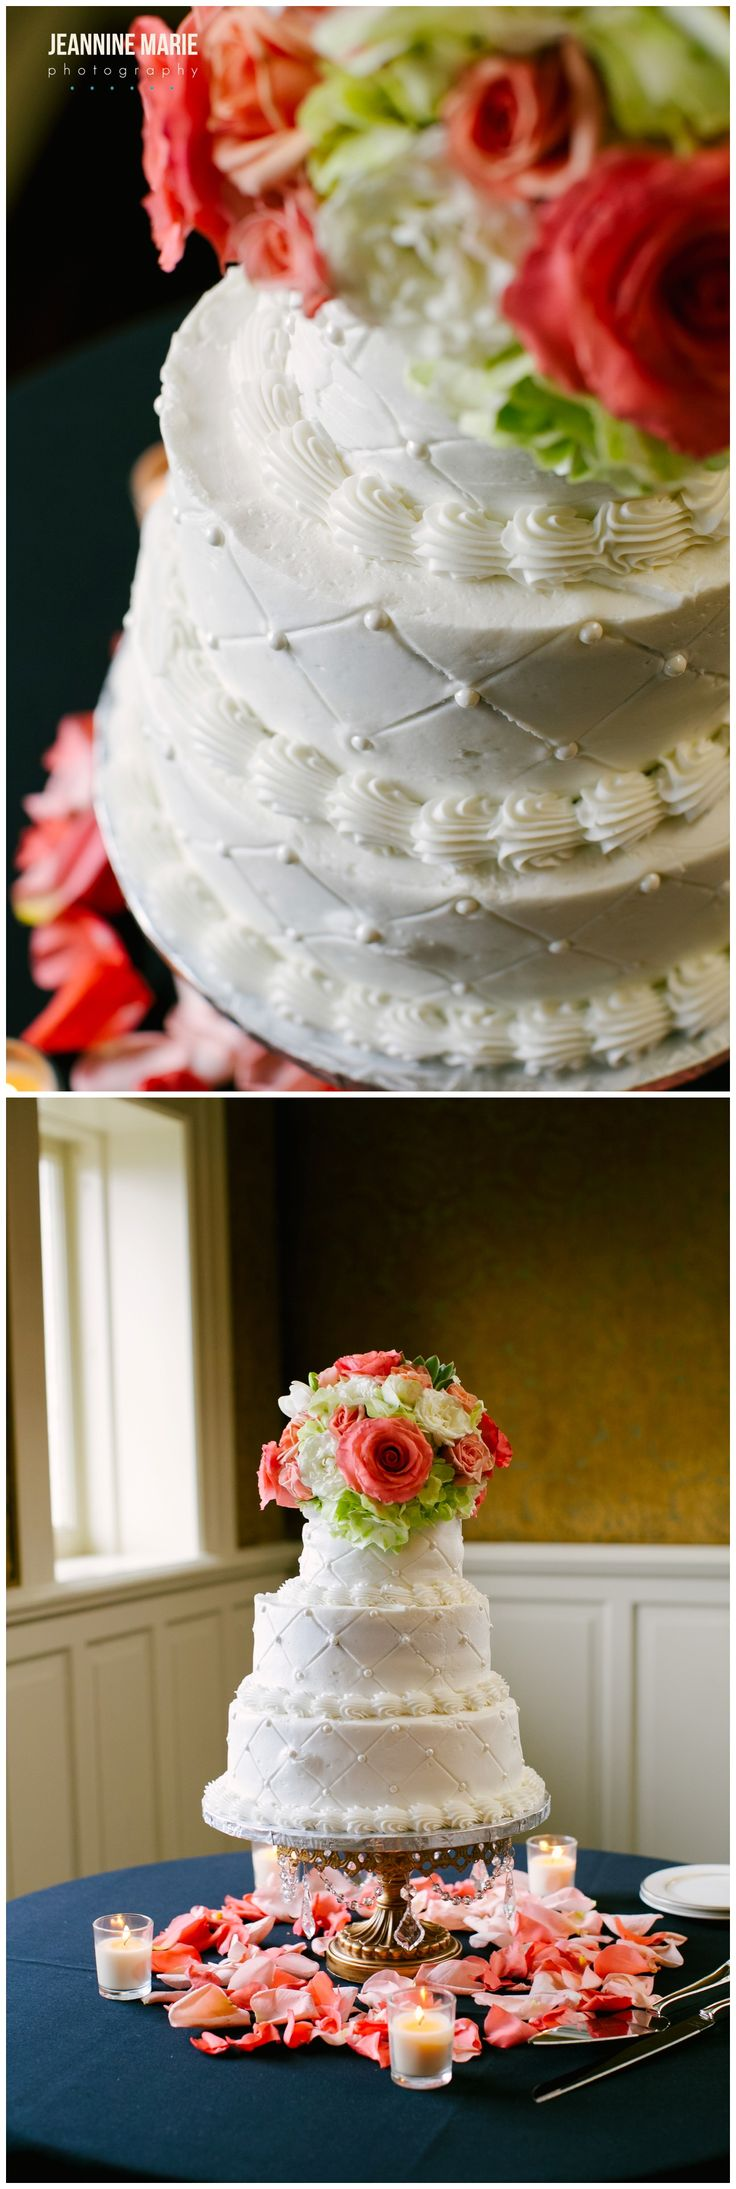 the 25 best sams club wedding cake ideas on pinterest tiered cakes tier cake and 1 tier cake. Black Bedroom Furniture Sets. Home Design Ideas